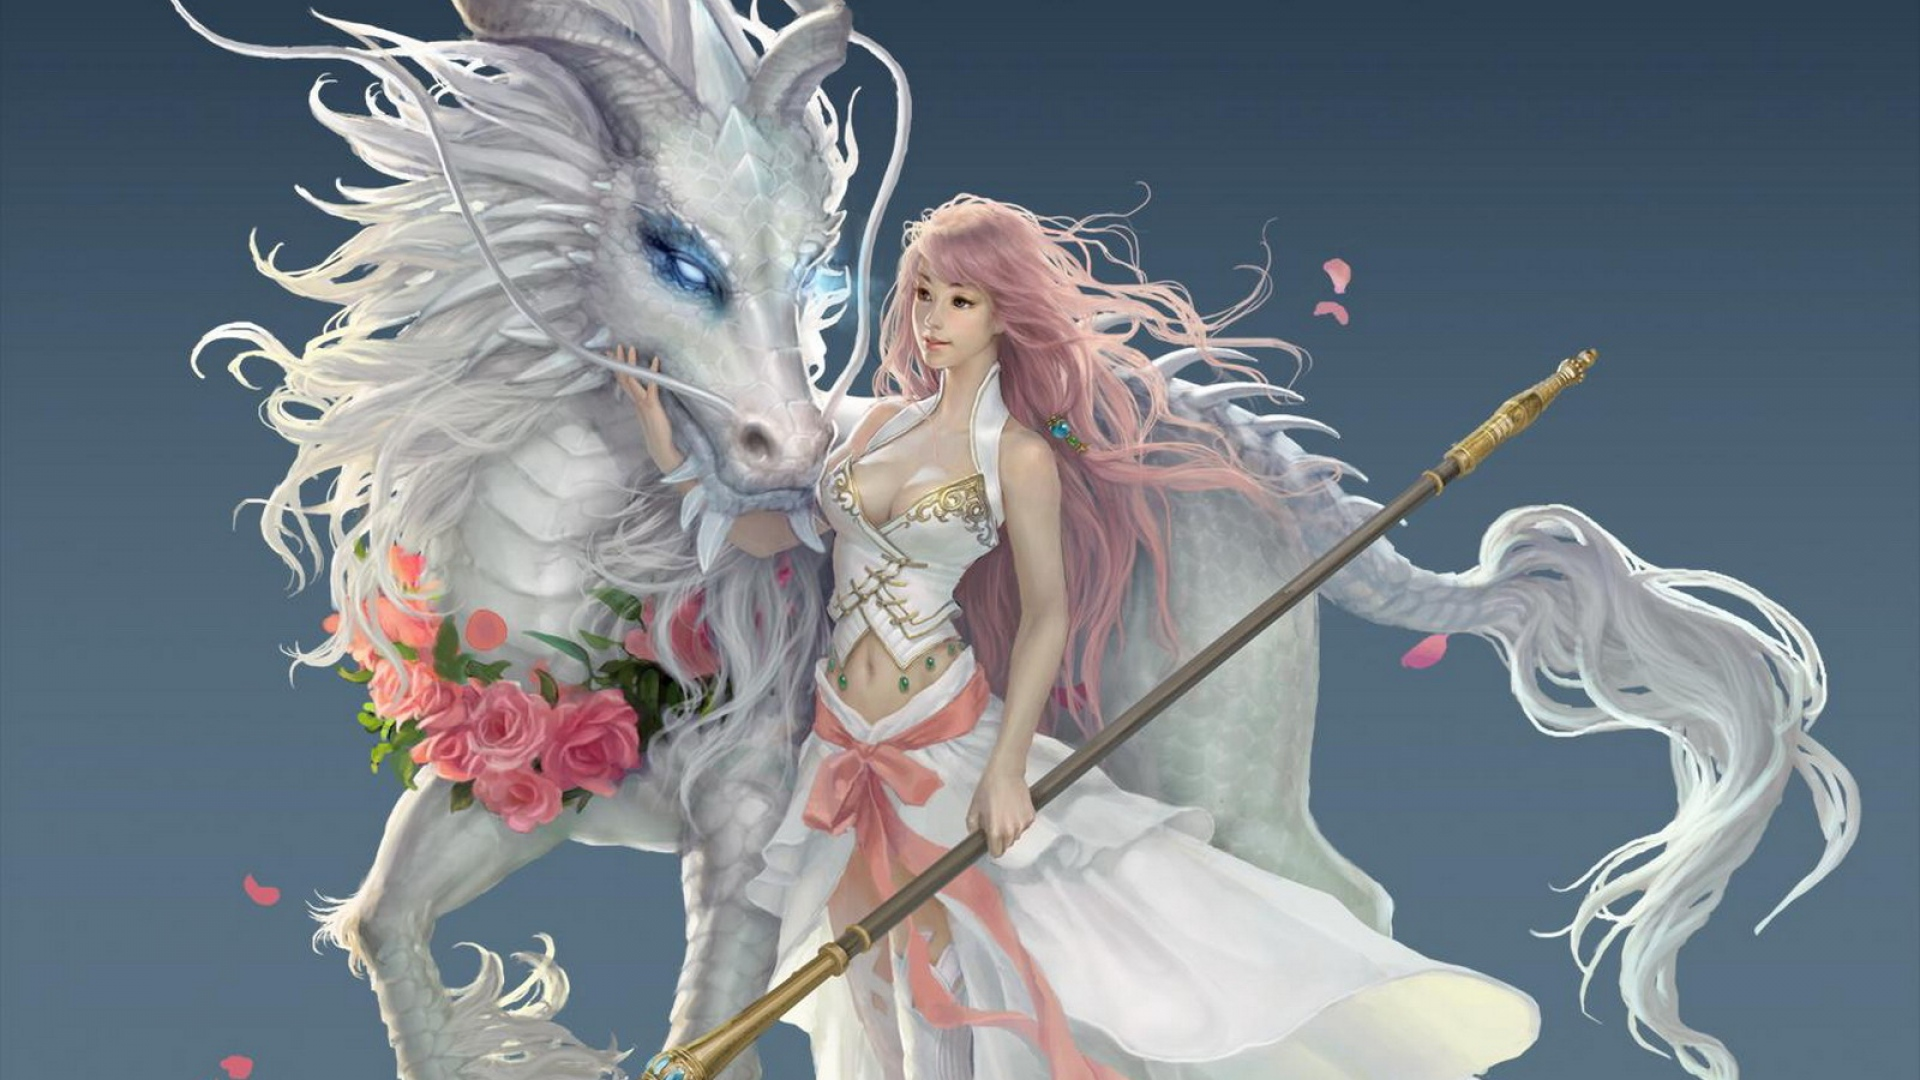 girl-dragon-horse-magic-staff-1920x1080